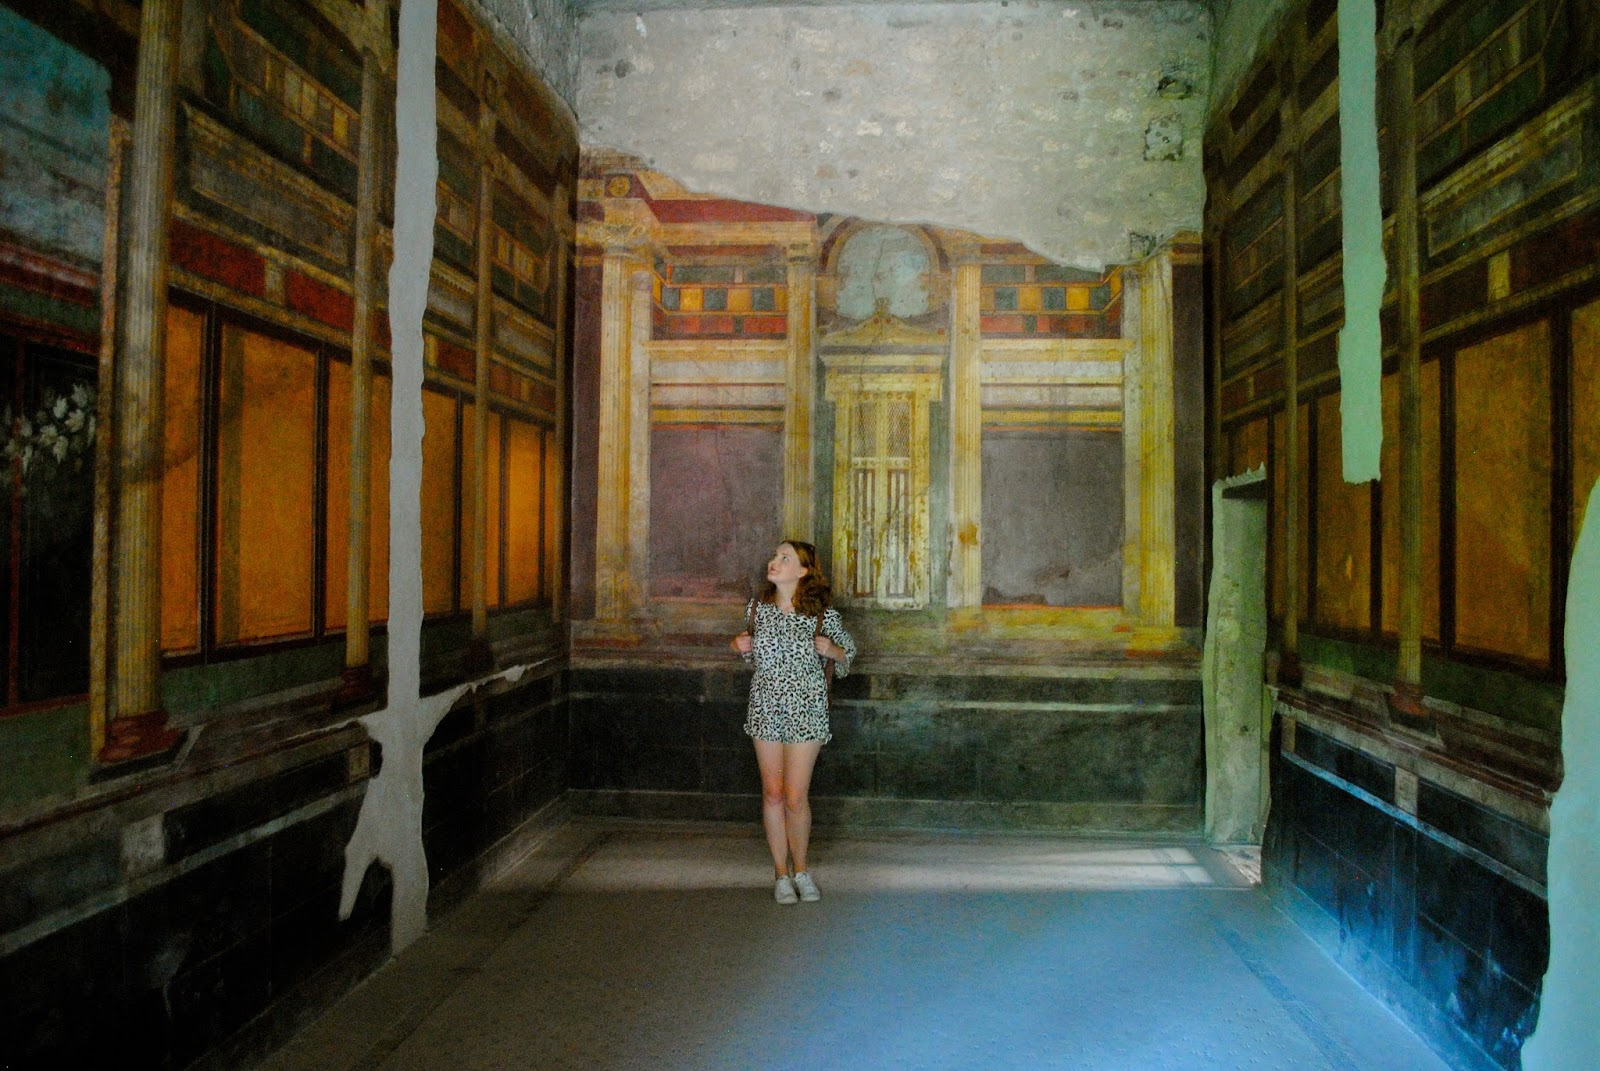 Villa of Mysteries in Pompeii Italy